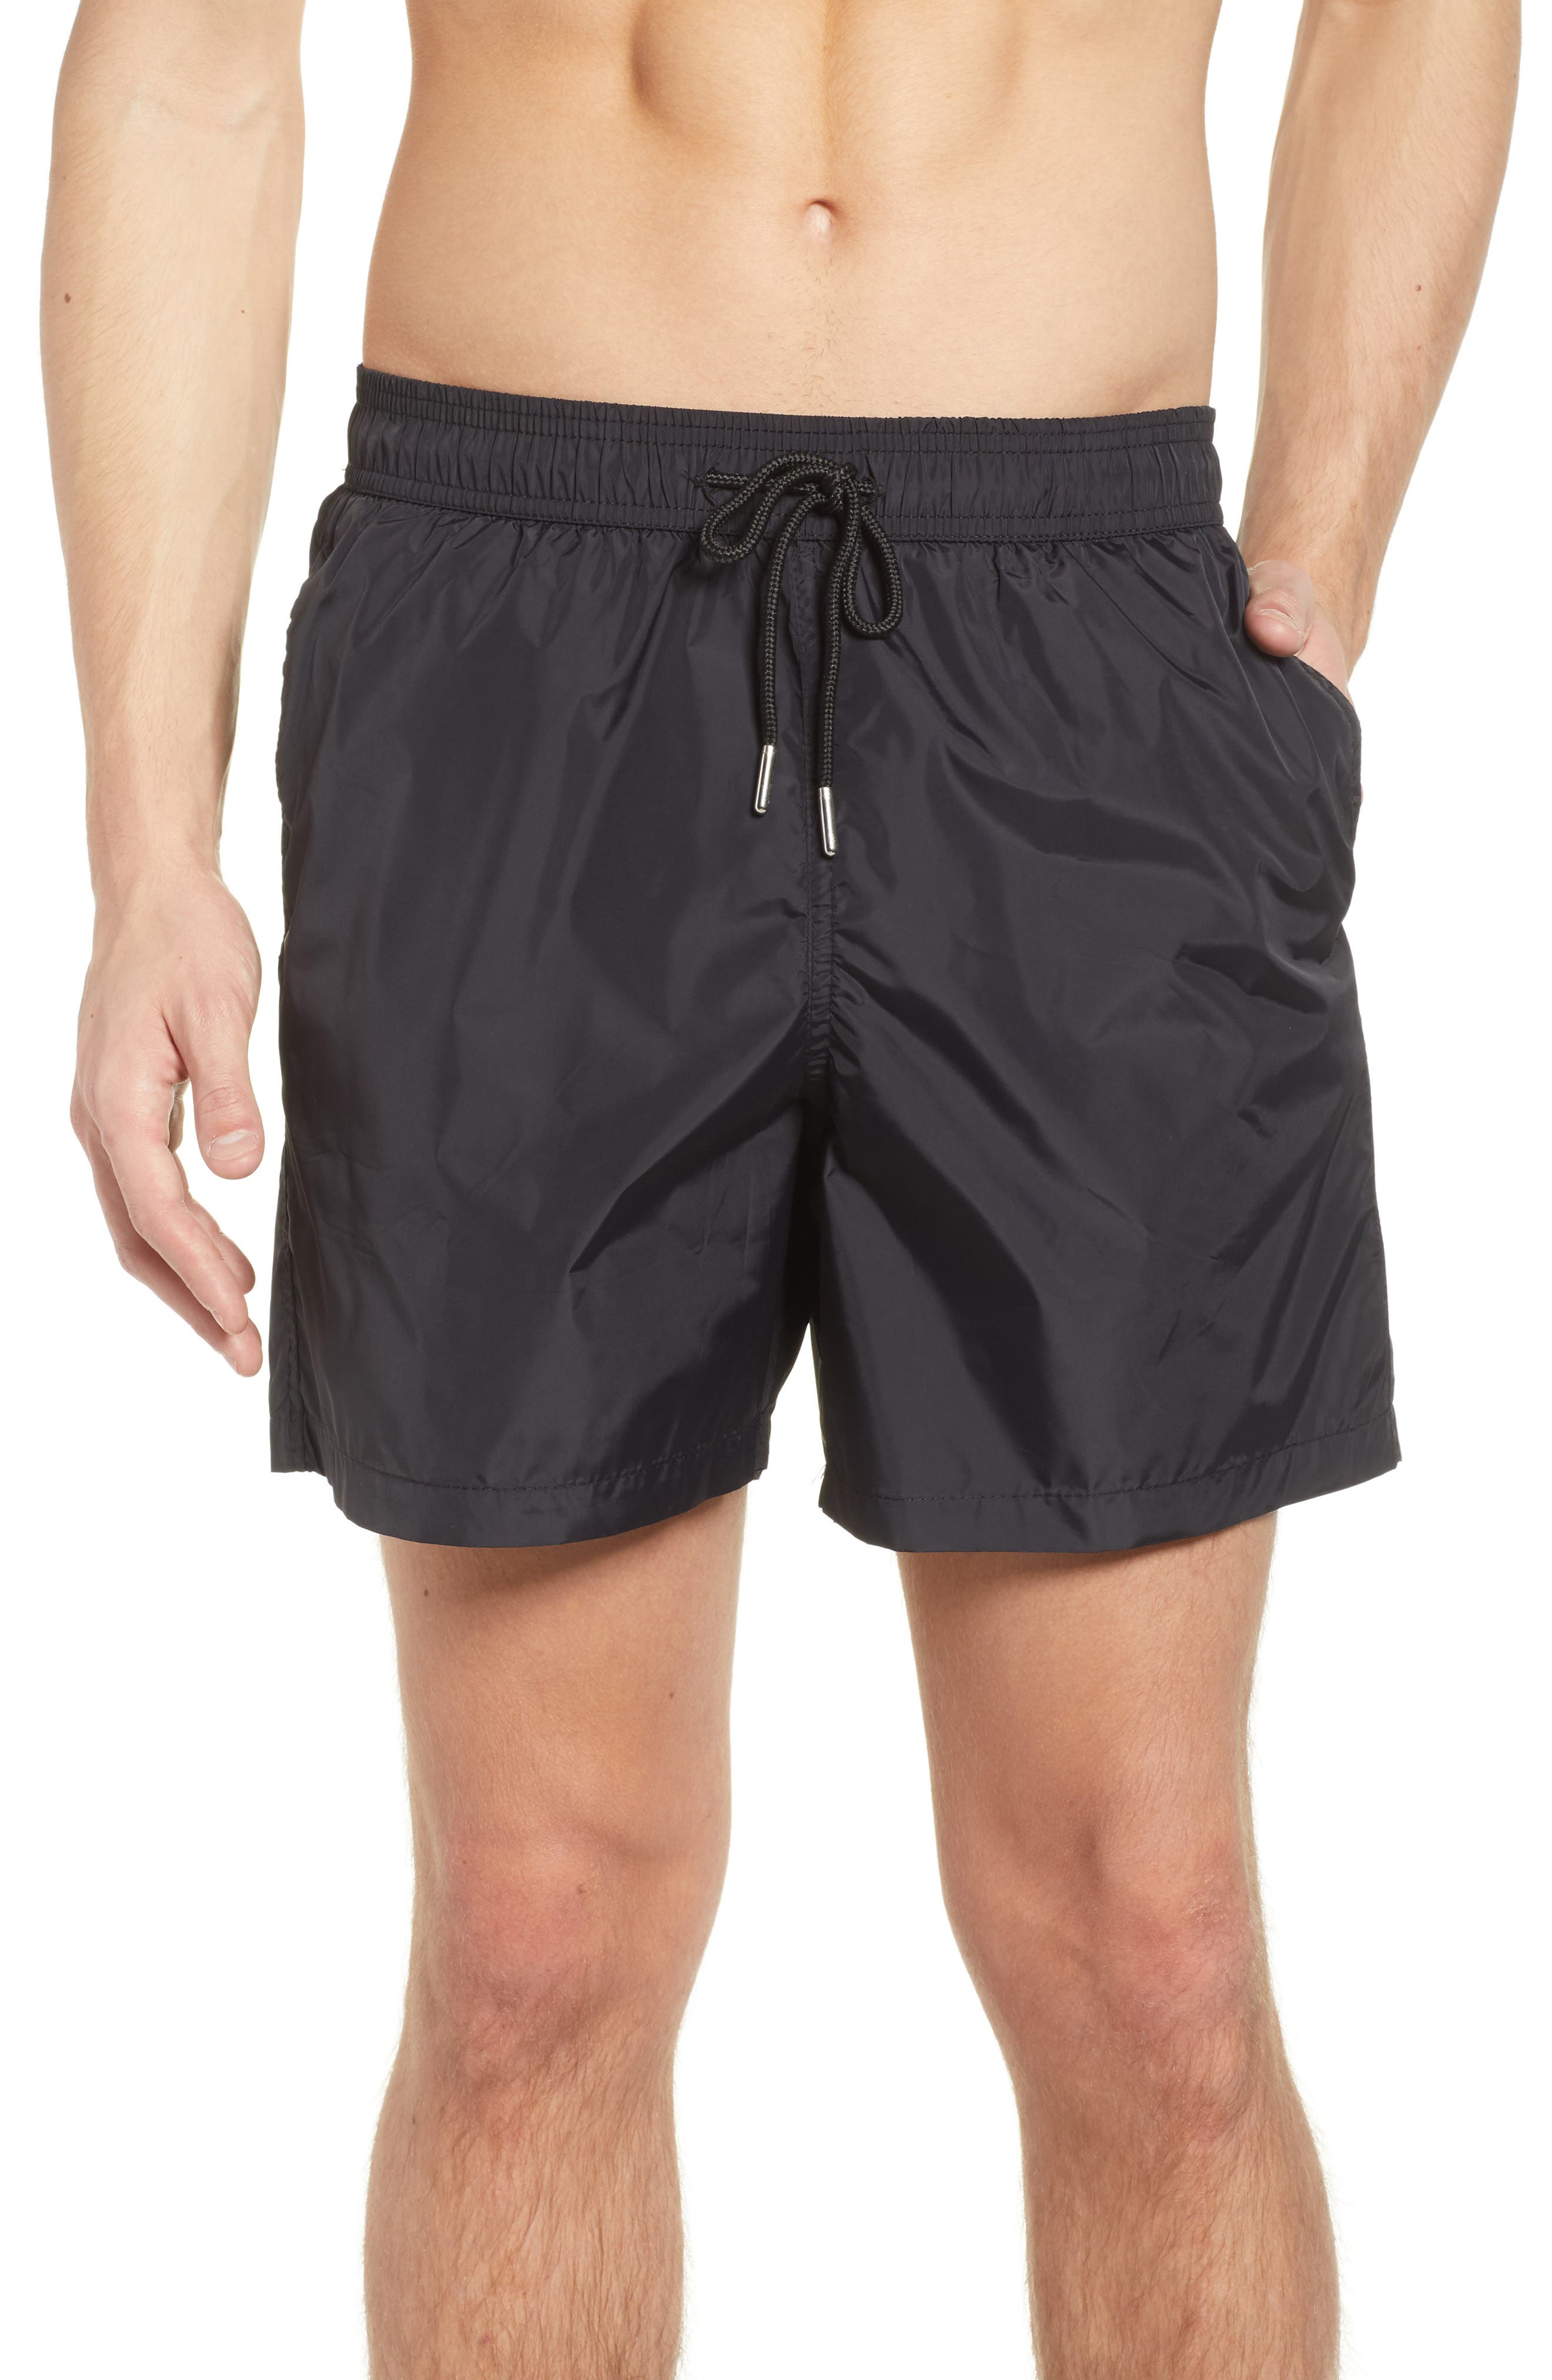 Jared Lang Swim Trunks